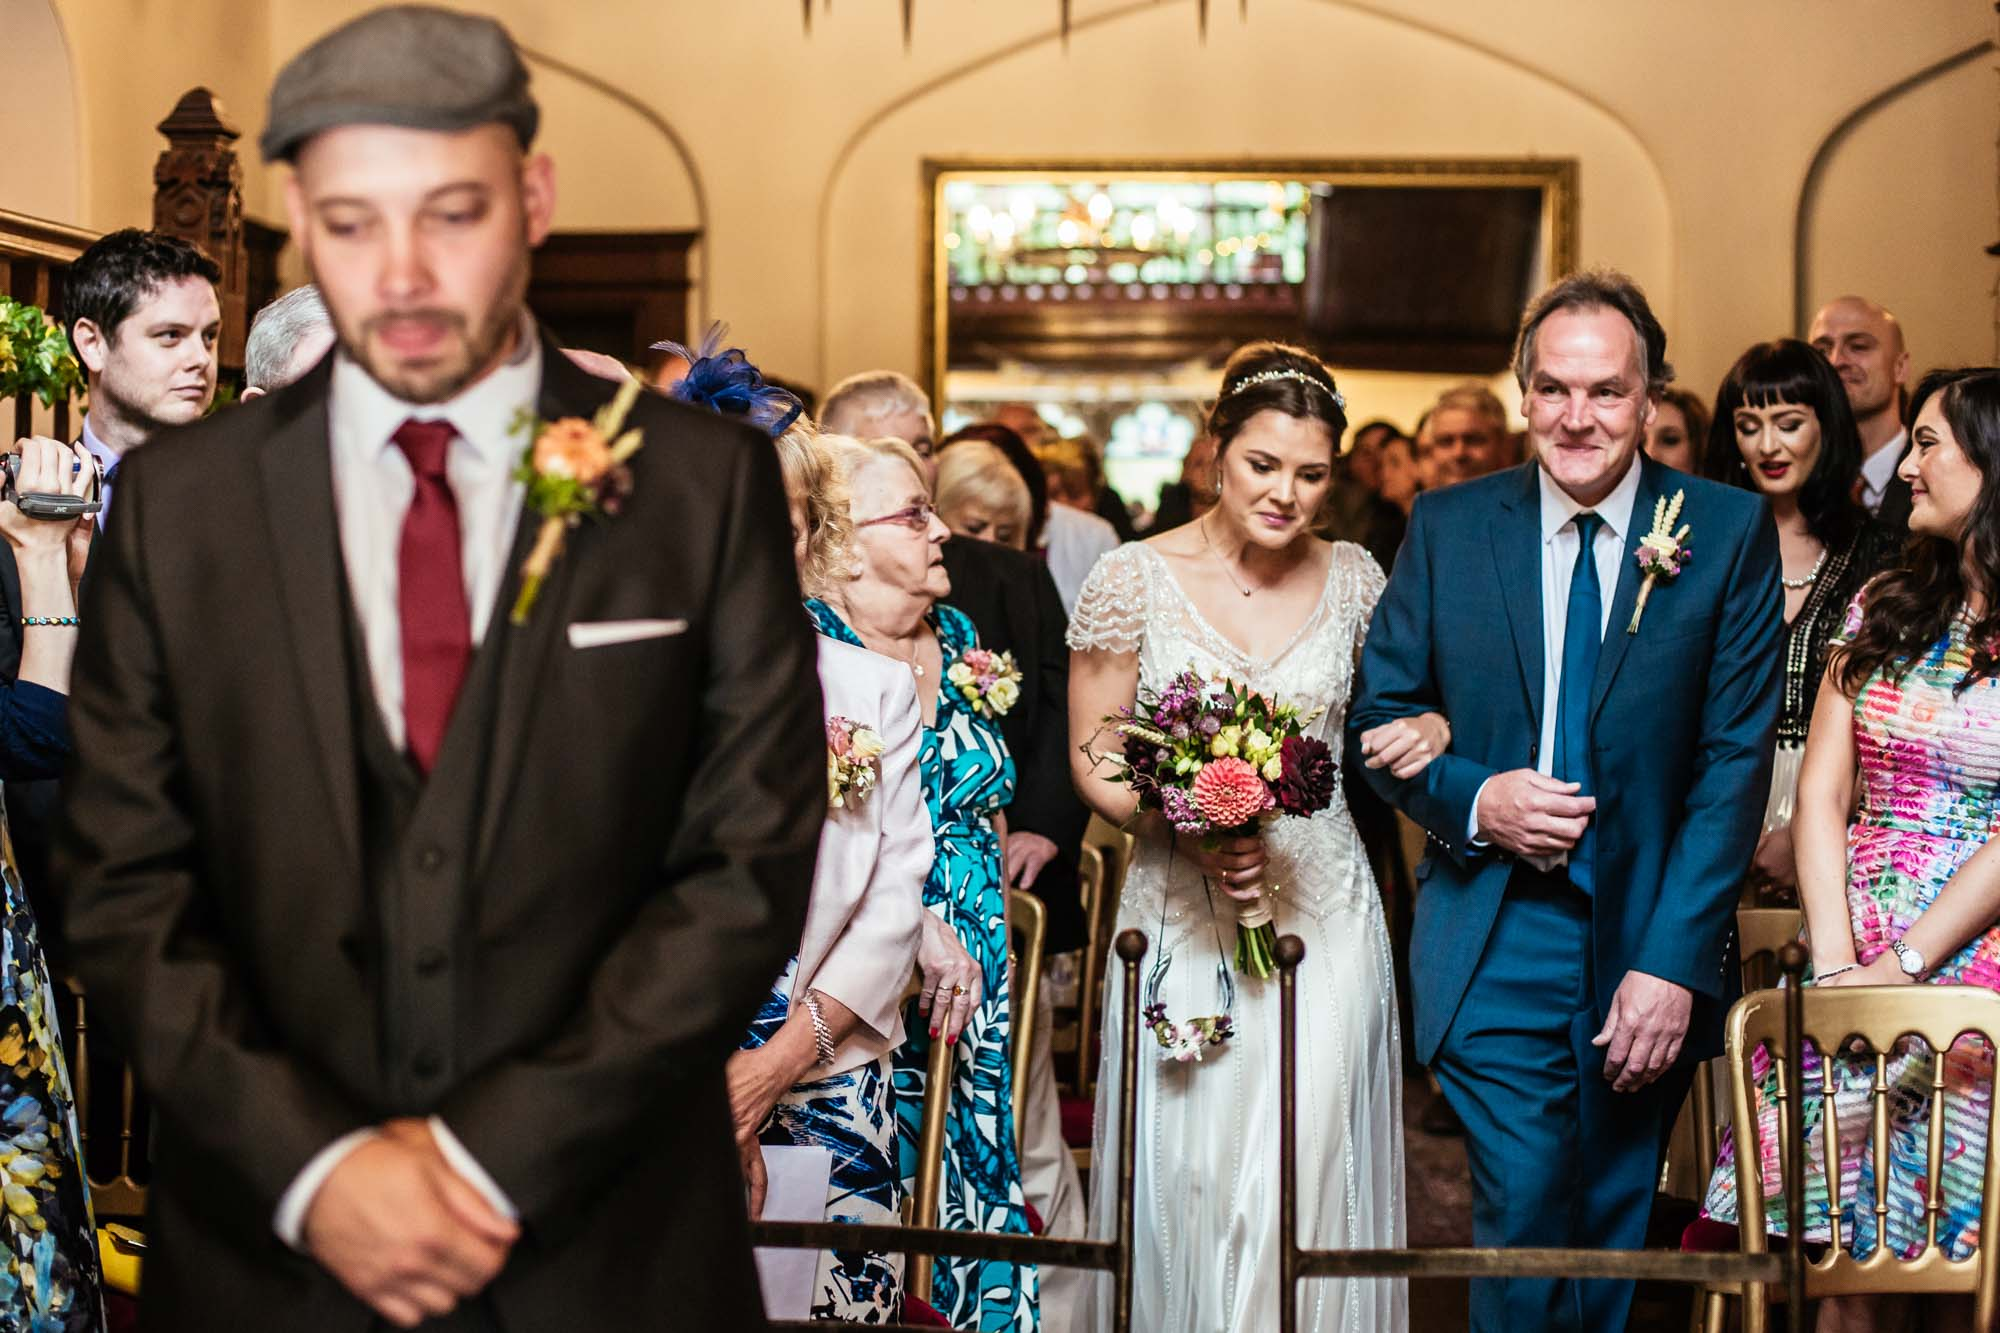 Hargate Hall Wedding Ceremony